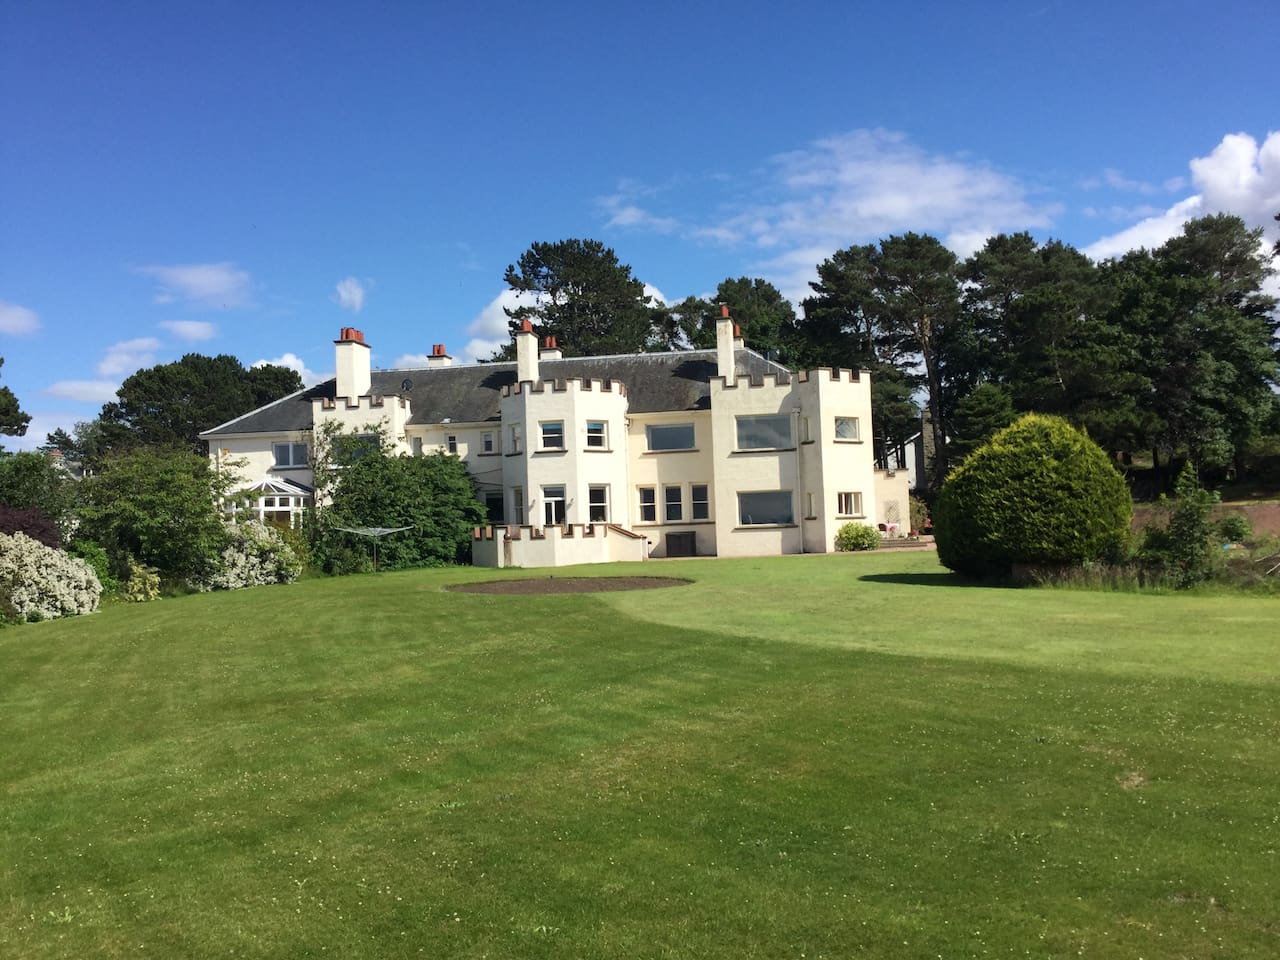 Duncrievie in its expansive gardens has a prime position overlooking the Moray Firth.